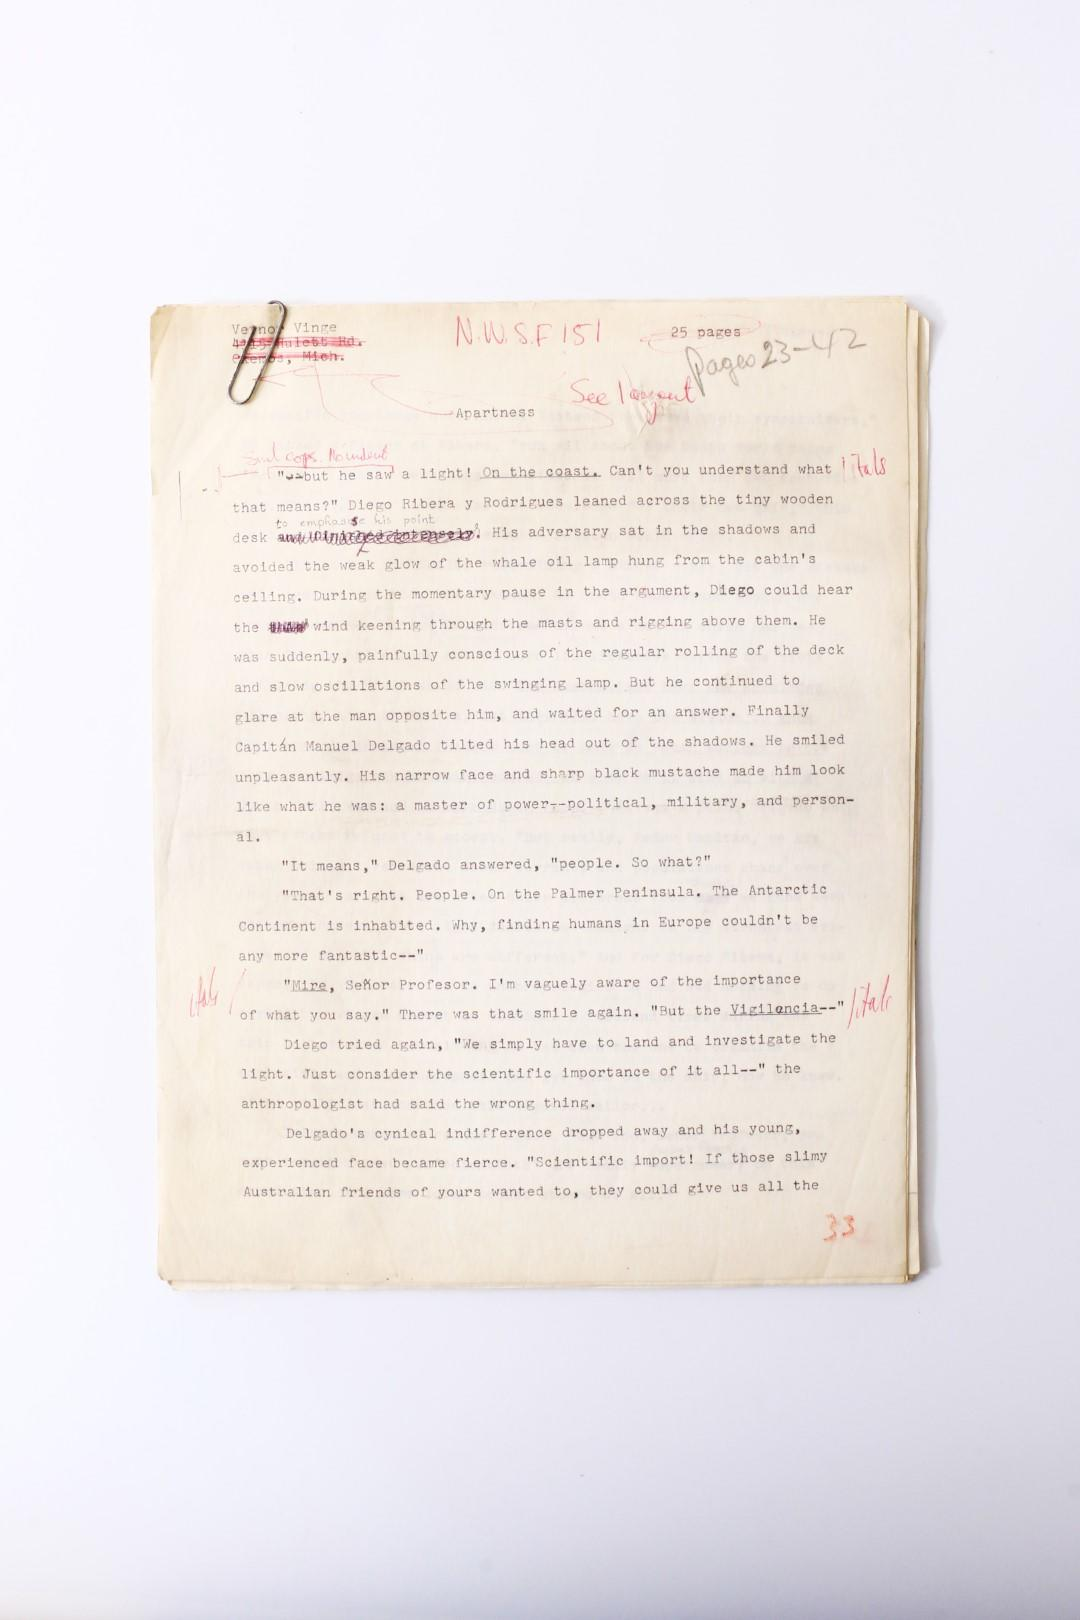 Vernor Vinge - apartness Typescript - None, nd [~1965], Manuscript.